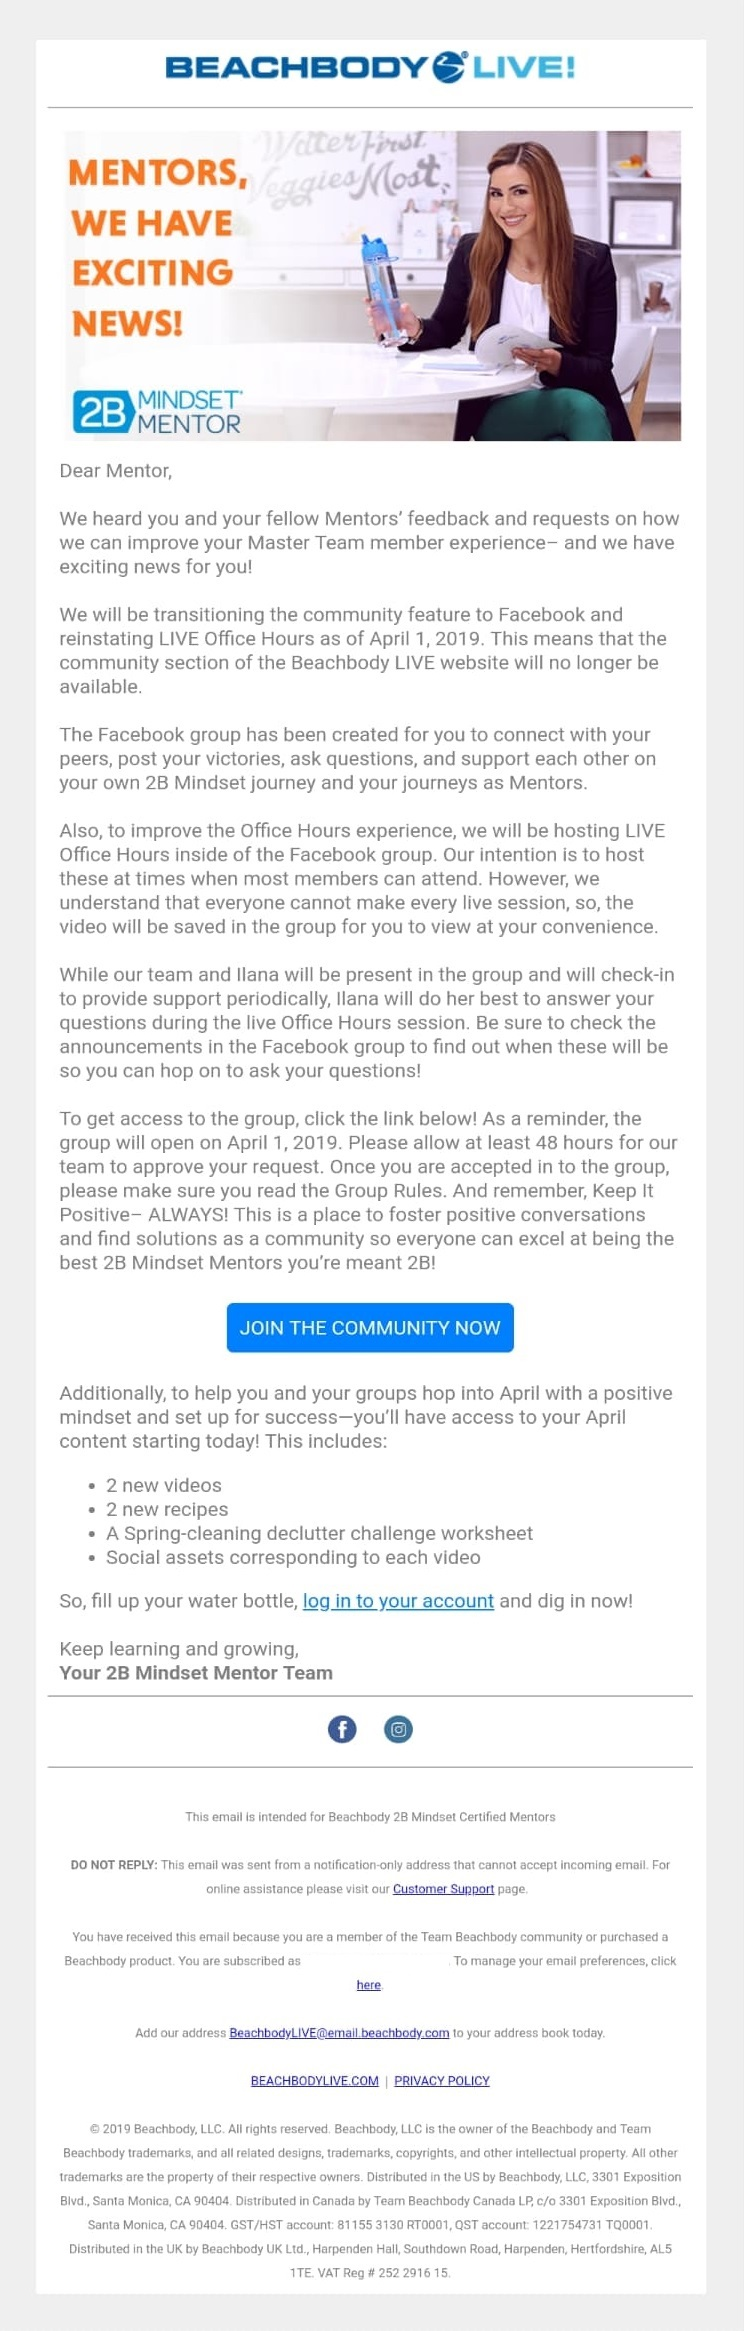 Take this example from Beachbody. They sent out this email to help move their 2B Mindset mentors from an ineffective community thread to a more interactive Facebook group in an attempt to address some concerns members of the LIVE group were having.